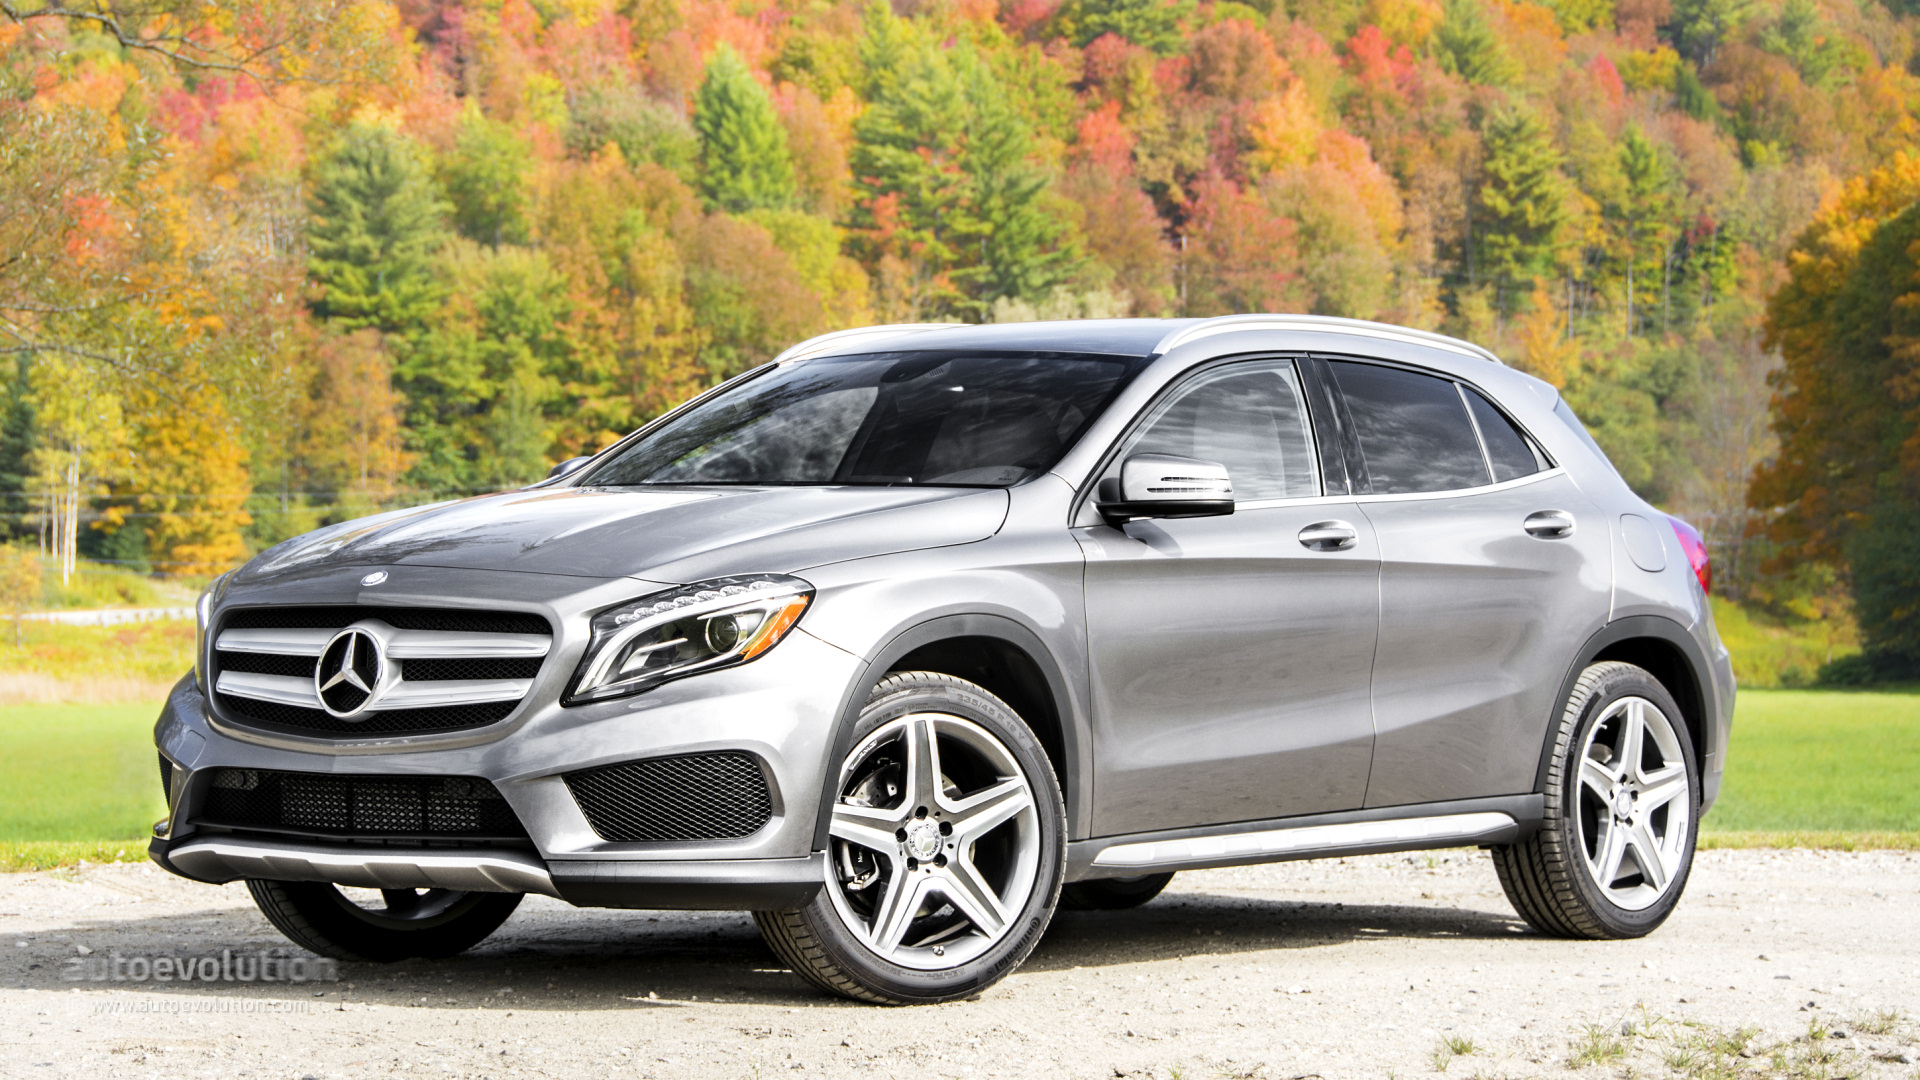 2015 mercedes benz gla250 4matic hd wallpapers autoevolution. Black Bedroom Furniture Sets. Home Design Ideas